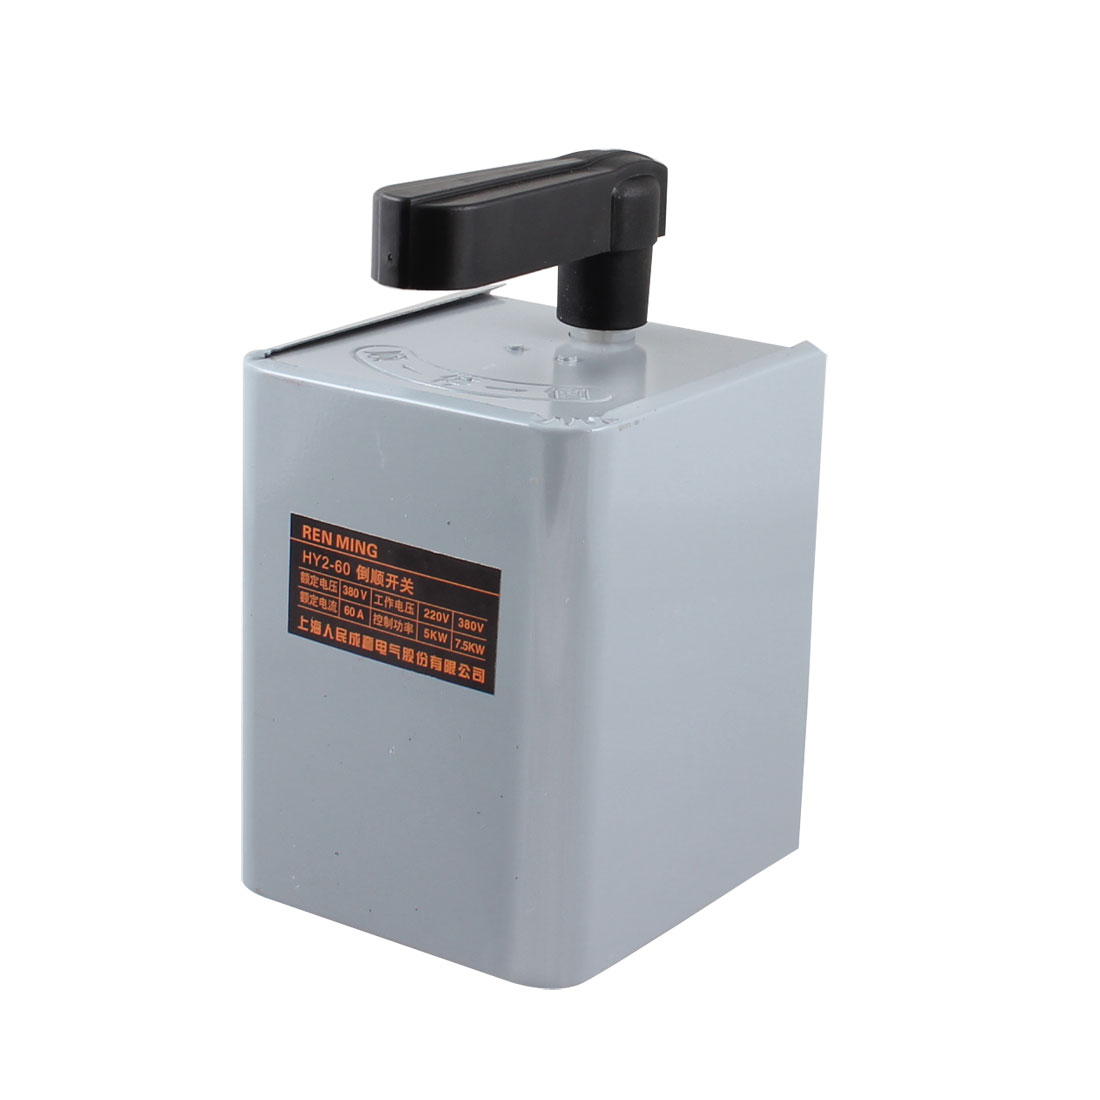 Unique Bargains AC 380V 60A HY2-60 Forward Reversing Switching Change Over Switch